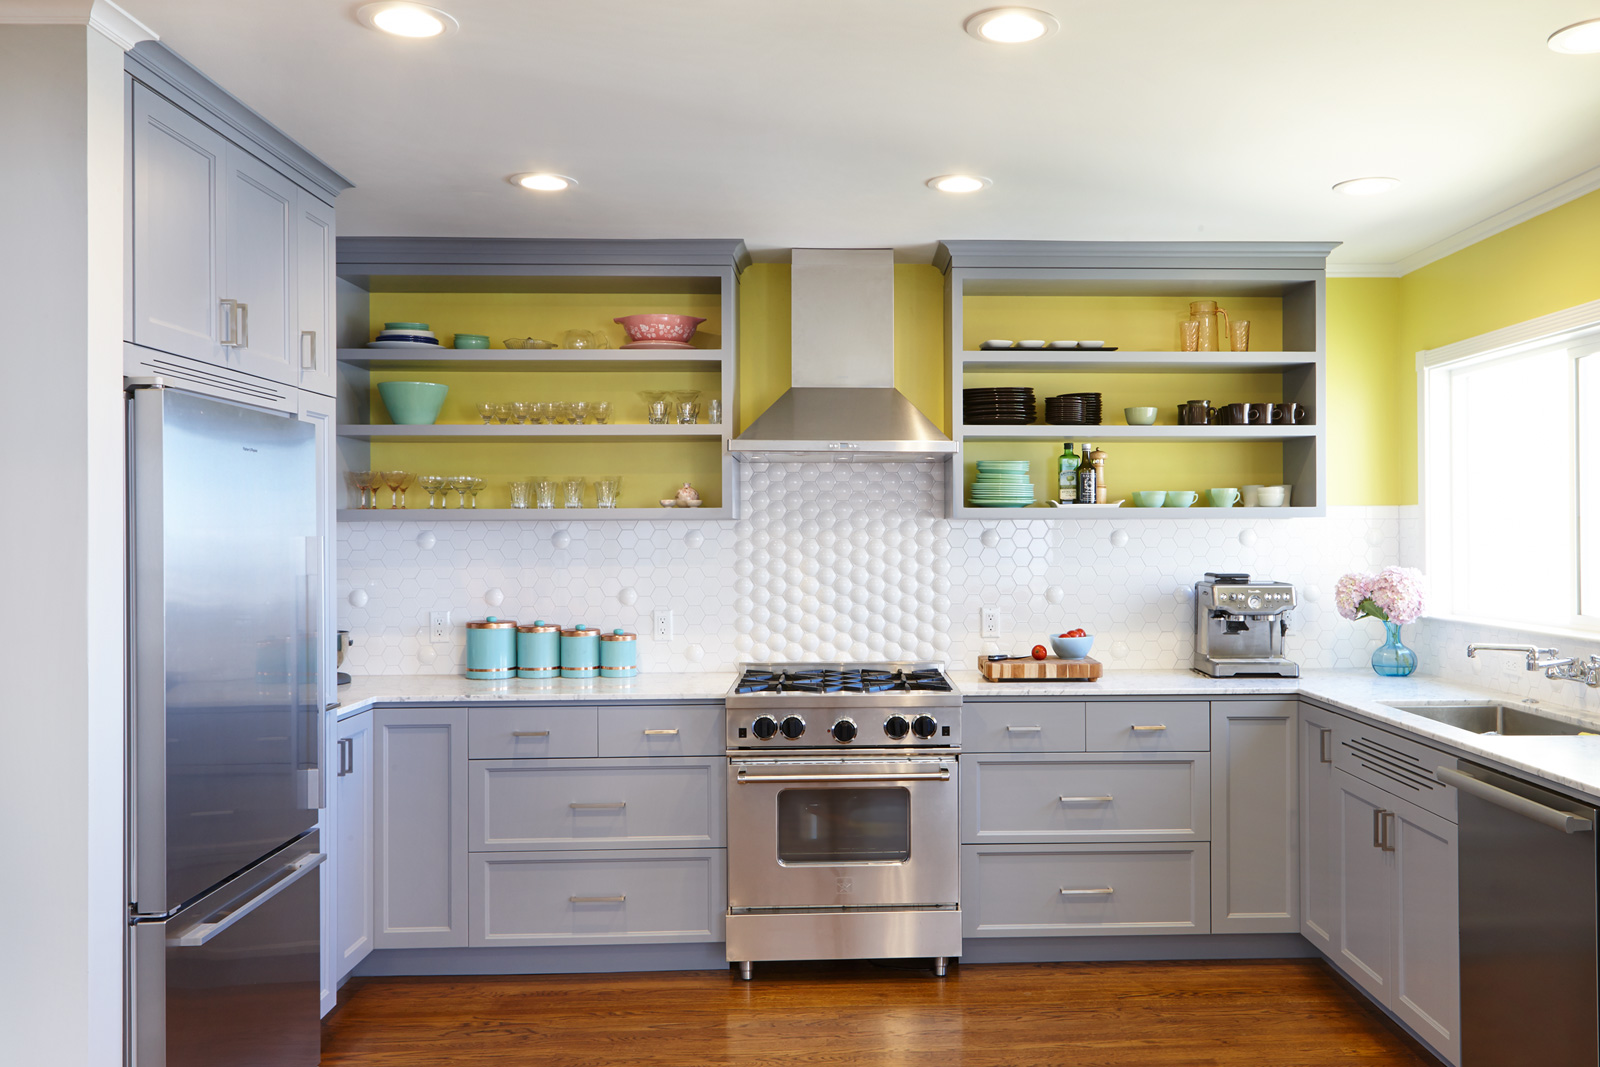 Best Paint For Kitchen Cabinets Paint For Kitchens - Which paint to use for kitchen cabinets